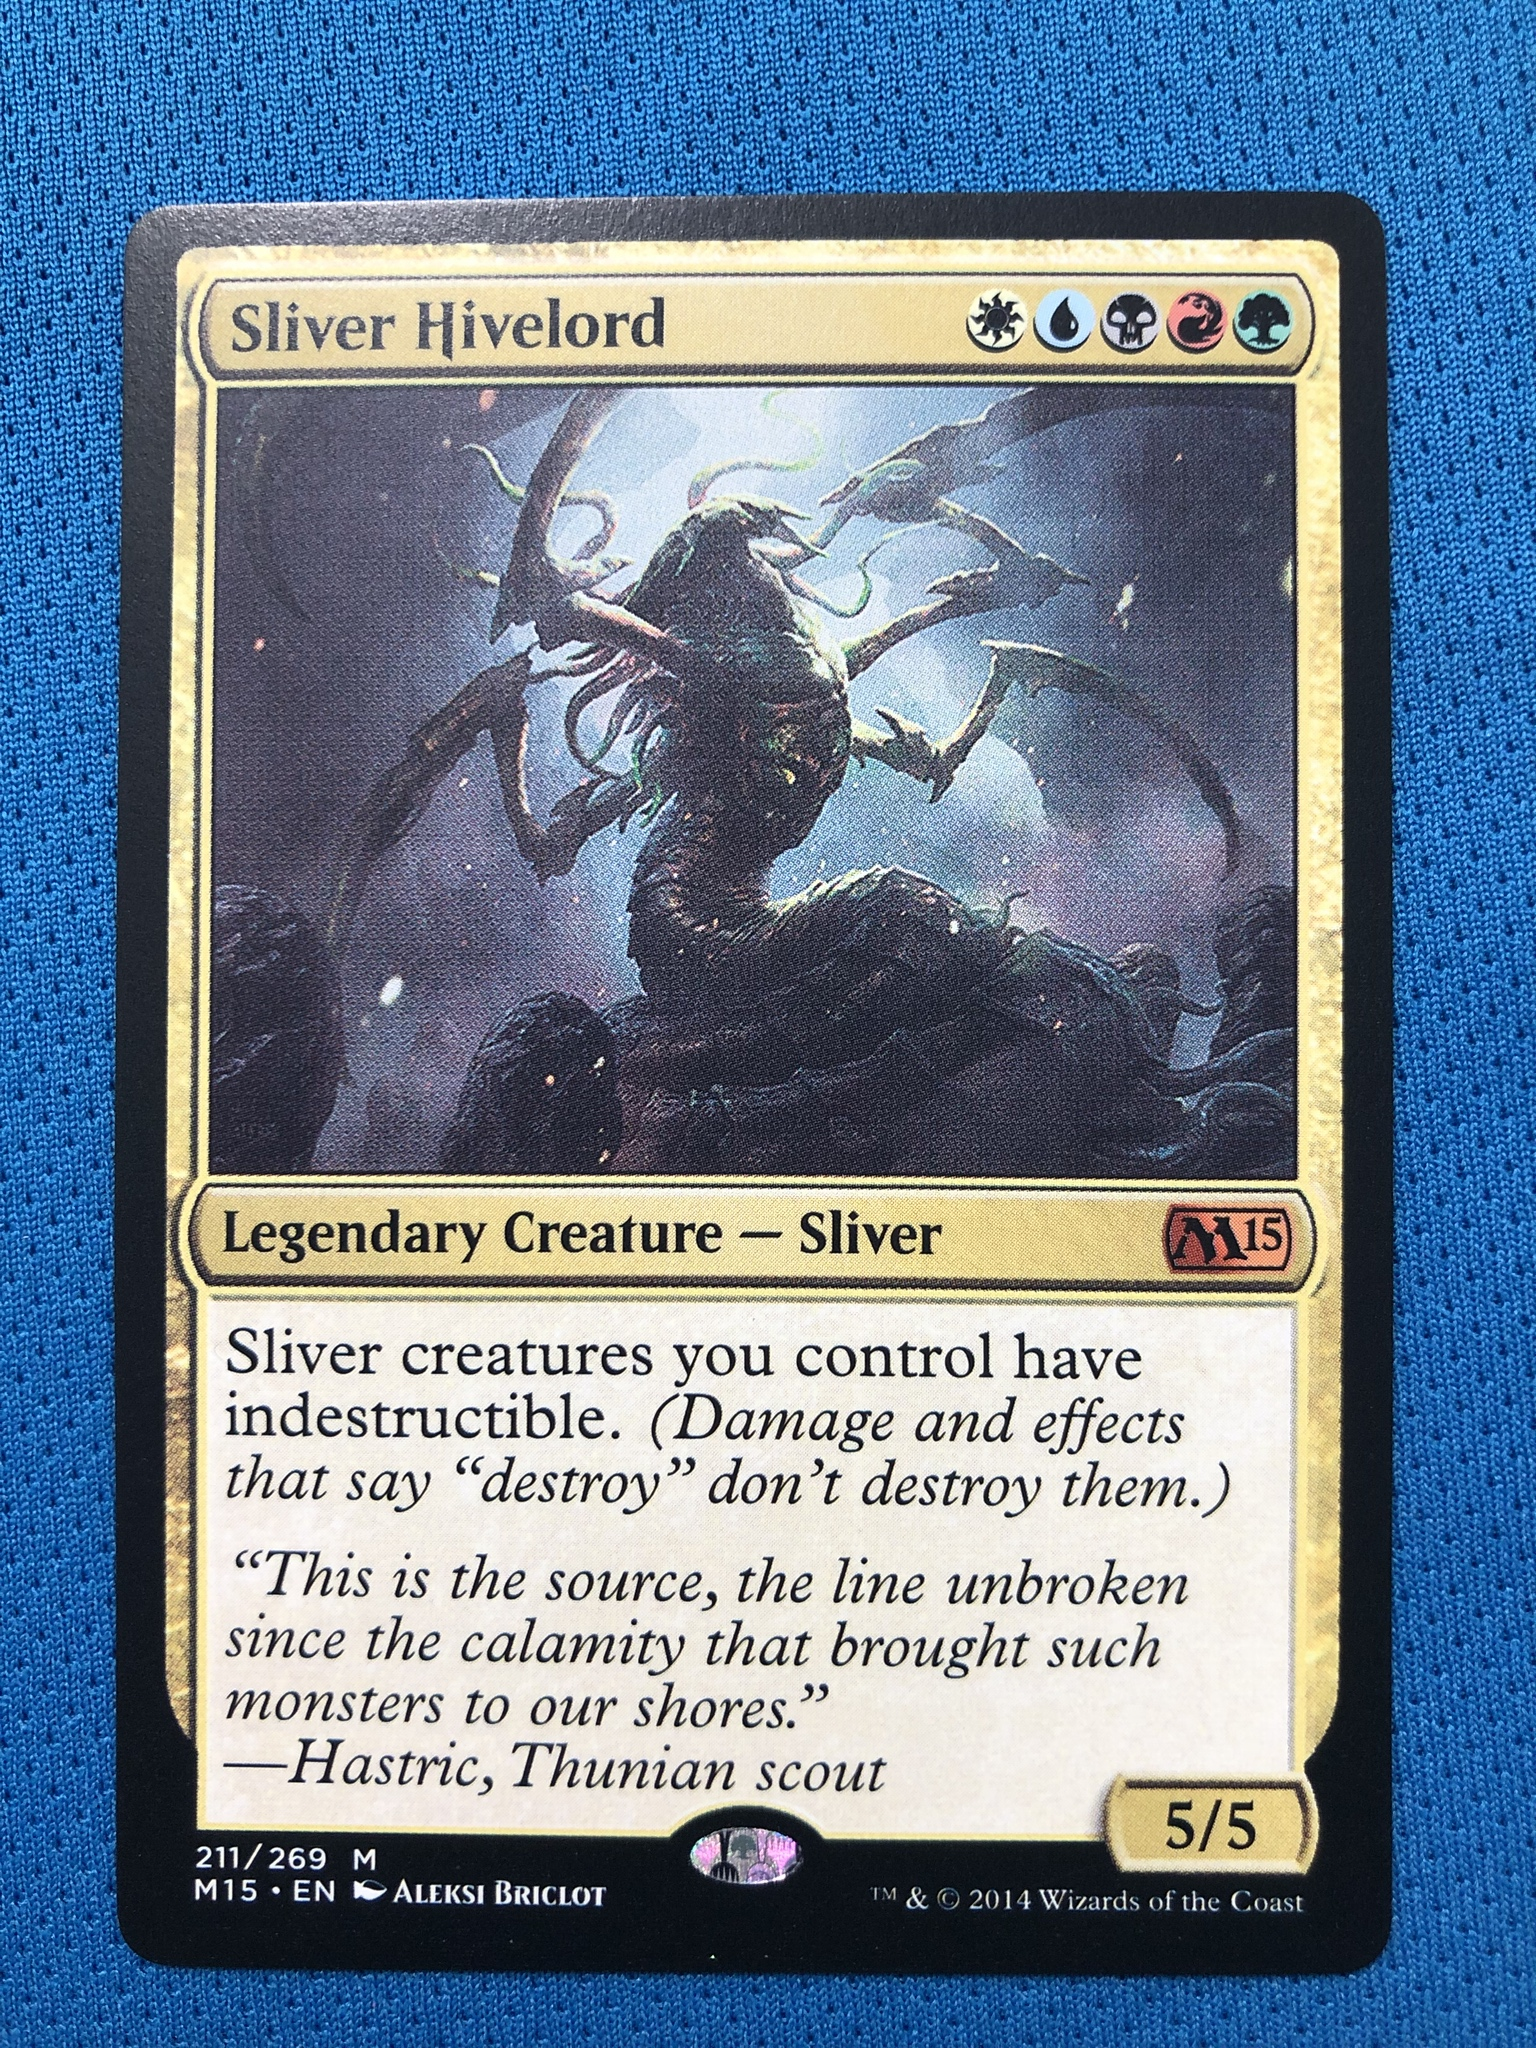 Sliver HivelordM15 Hologram Magician ProxyKing 8.0 VIP The Proxy Cards To Gathering Every Single Mg Card.